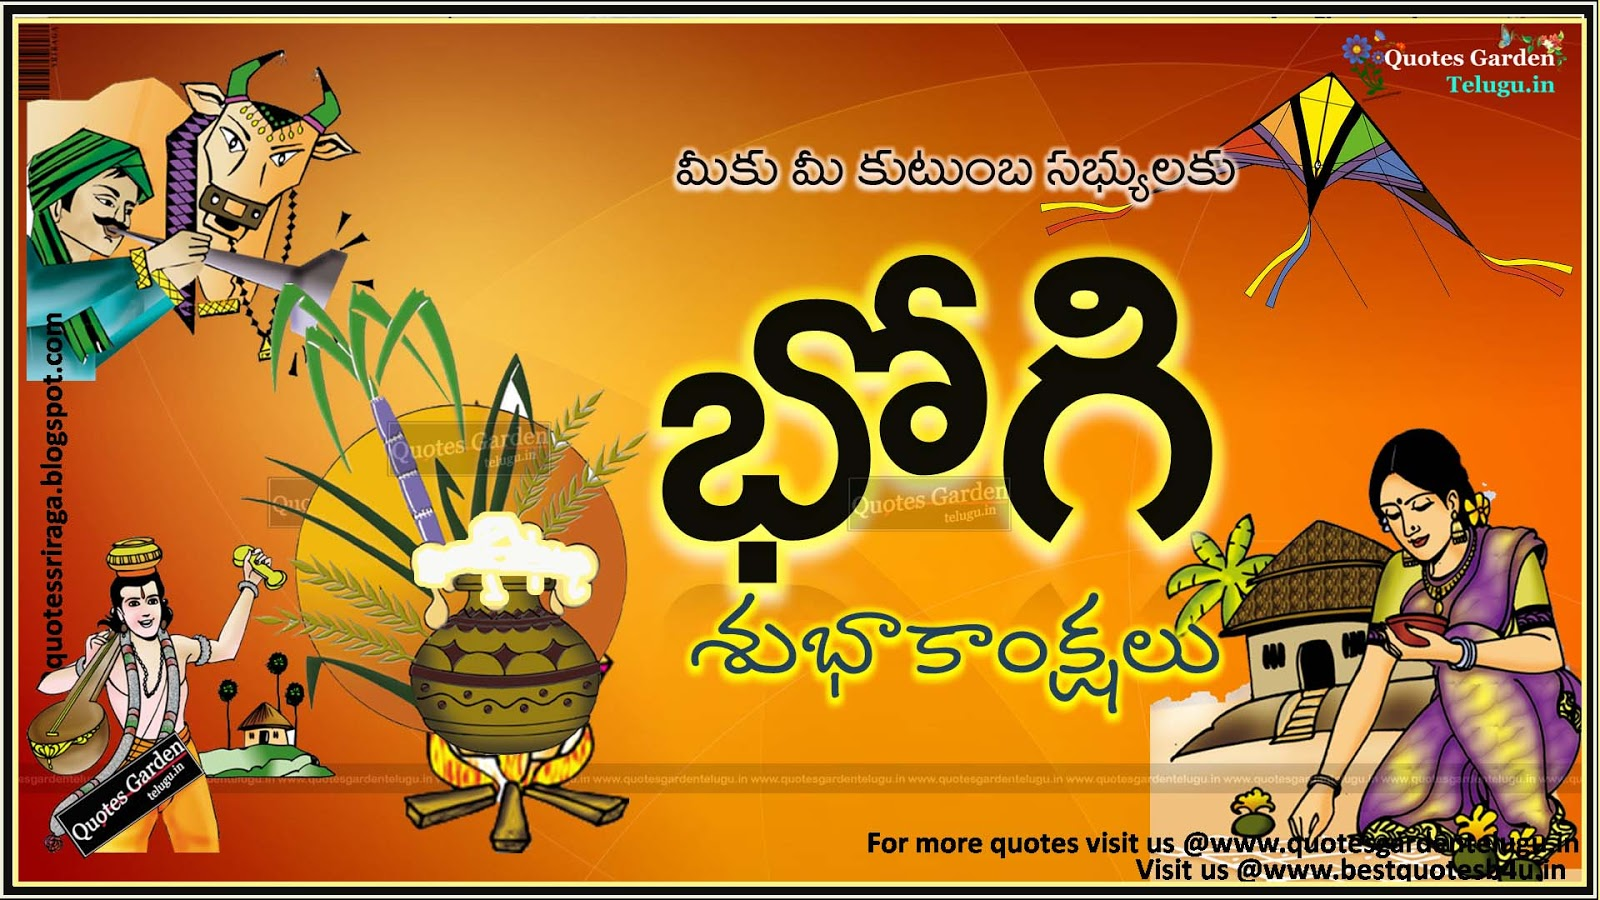 Telugu bhogi sankranthi greetings quotes wallpapers quotes garden telugu bhogi sankranthi greetings quotes wallpapers m4hsunfo